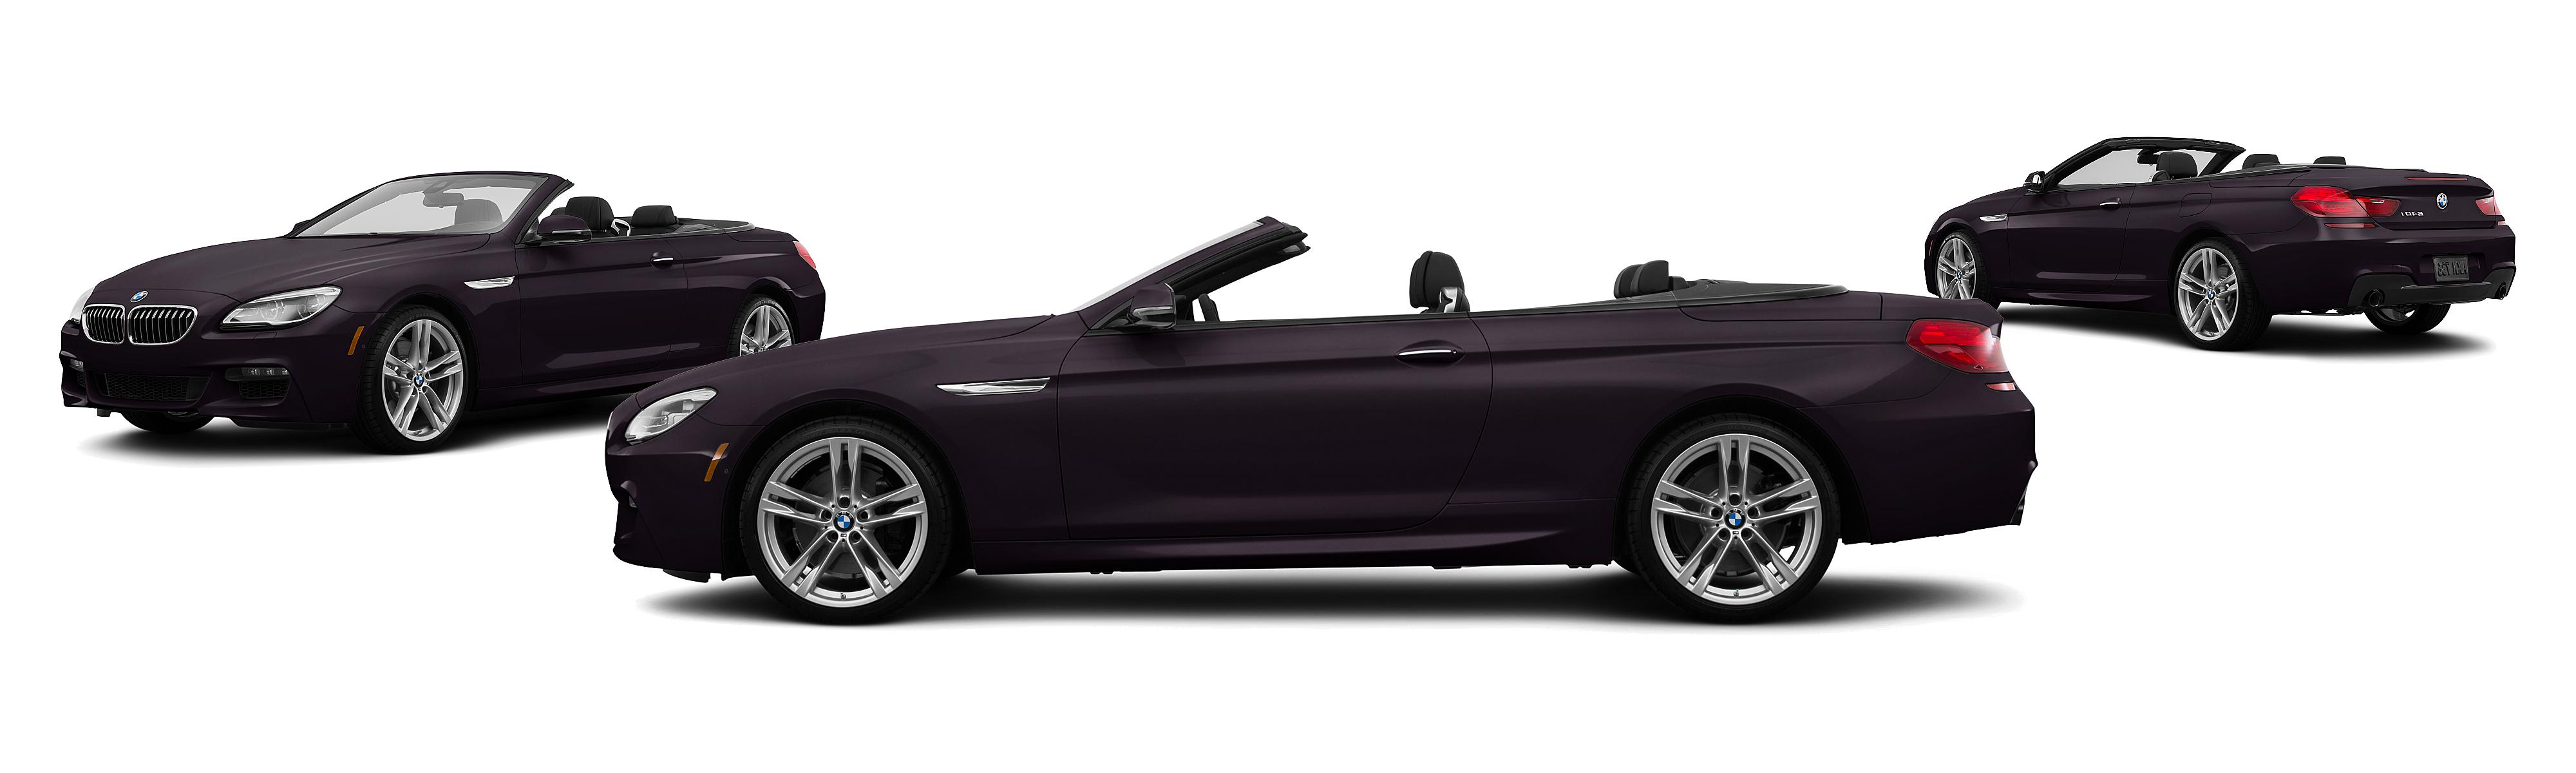 2017 BMW 6 Series 650i 2dr Convertible